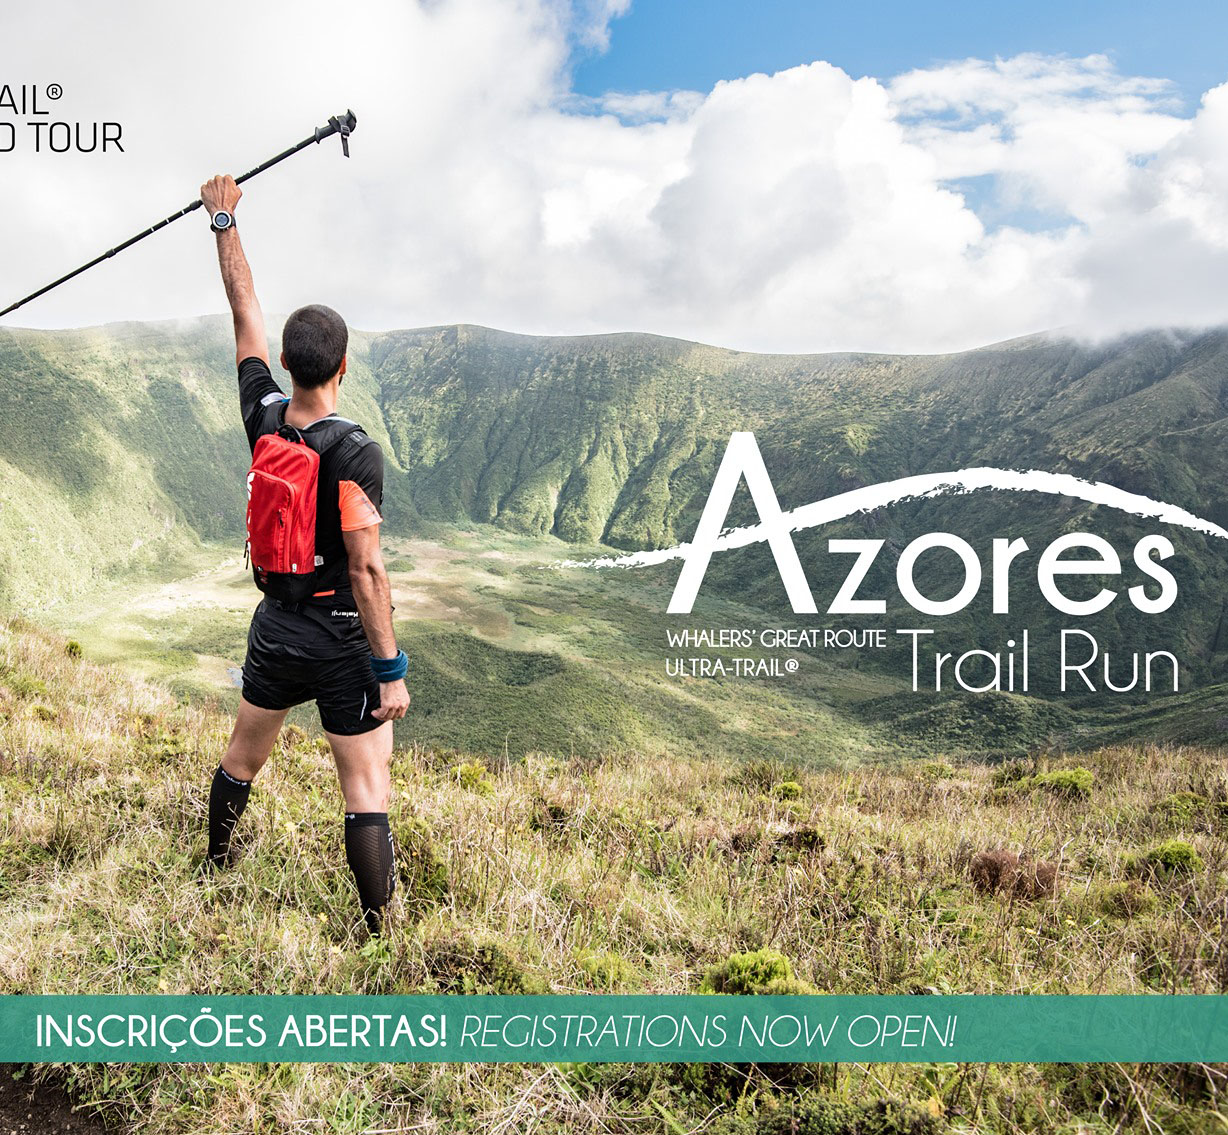 Whalers' Great Route Ultra-Trail 2021